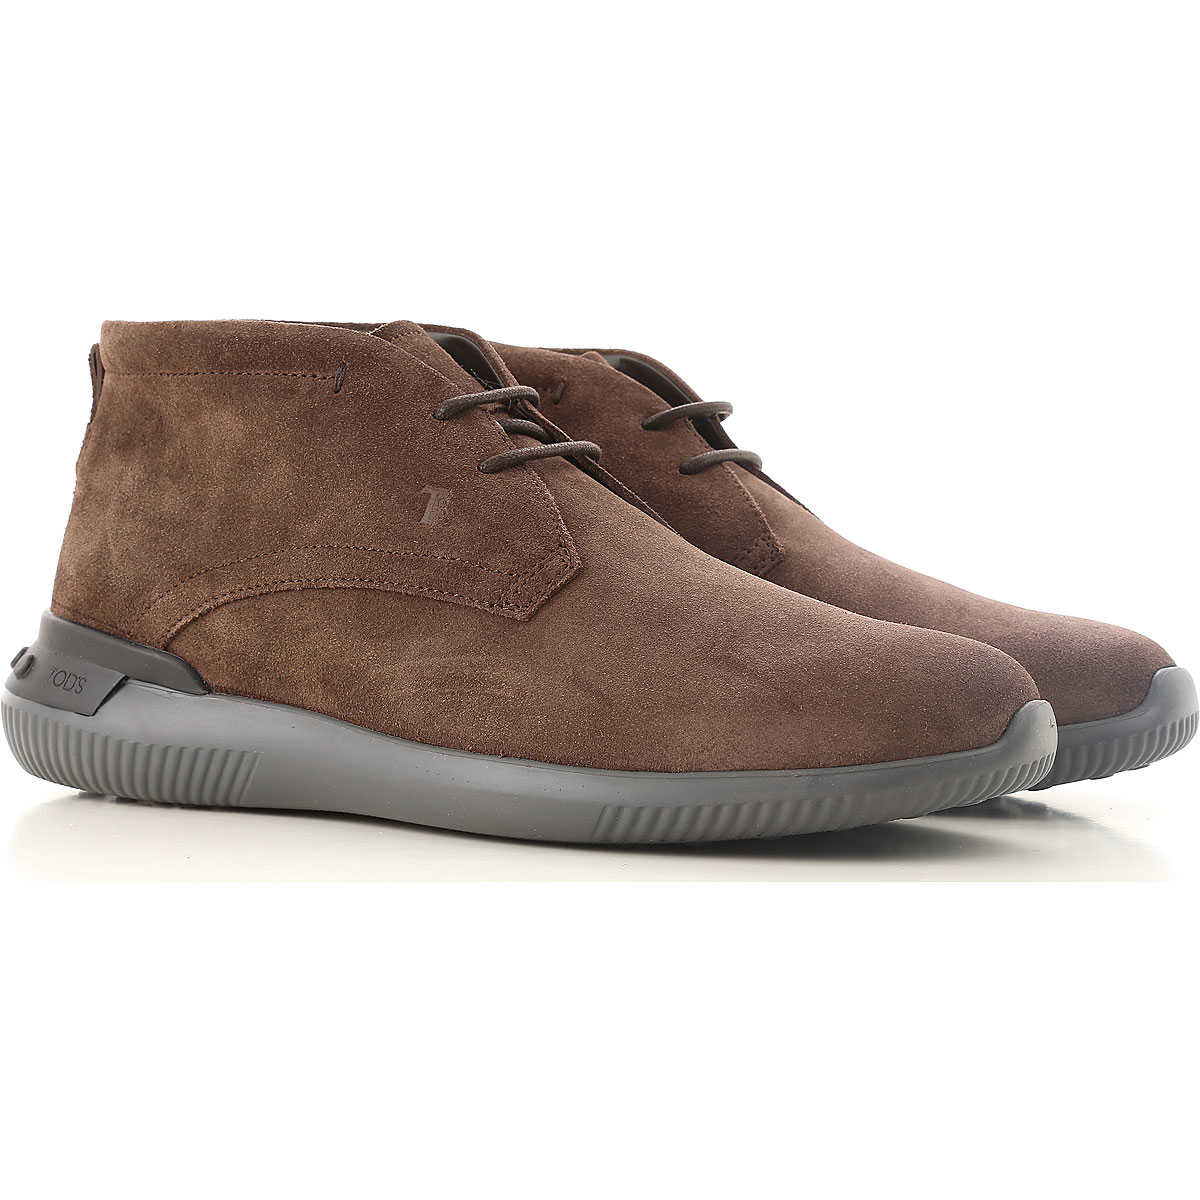 Tods Boots for Men Booties On Sale SE - GOOFASH